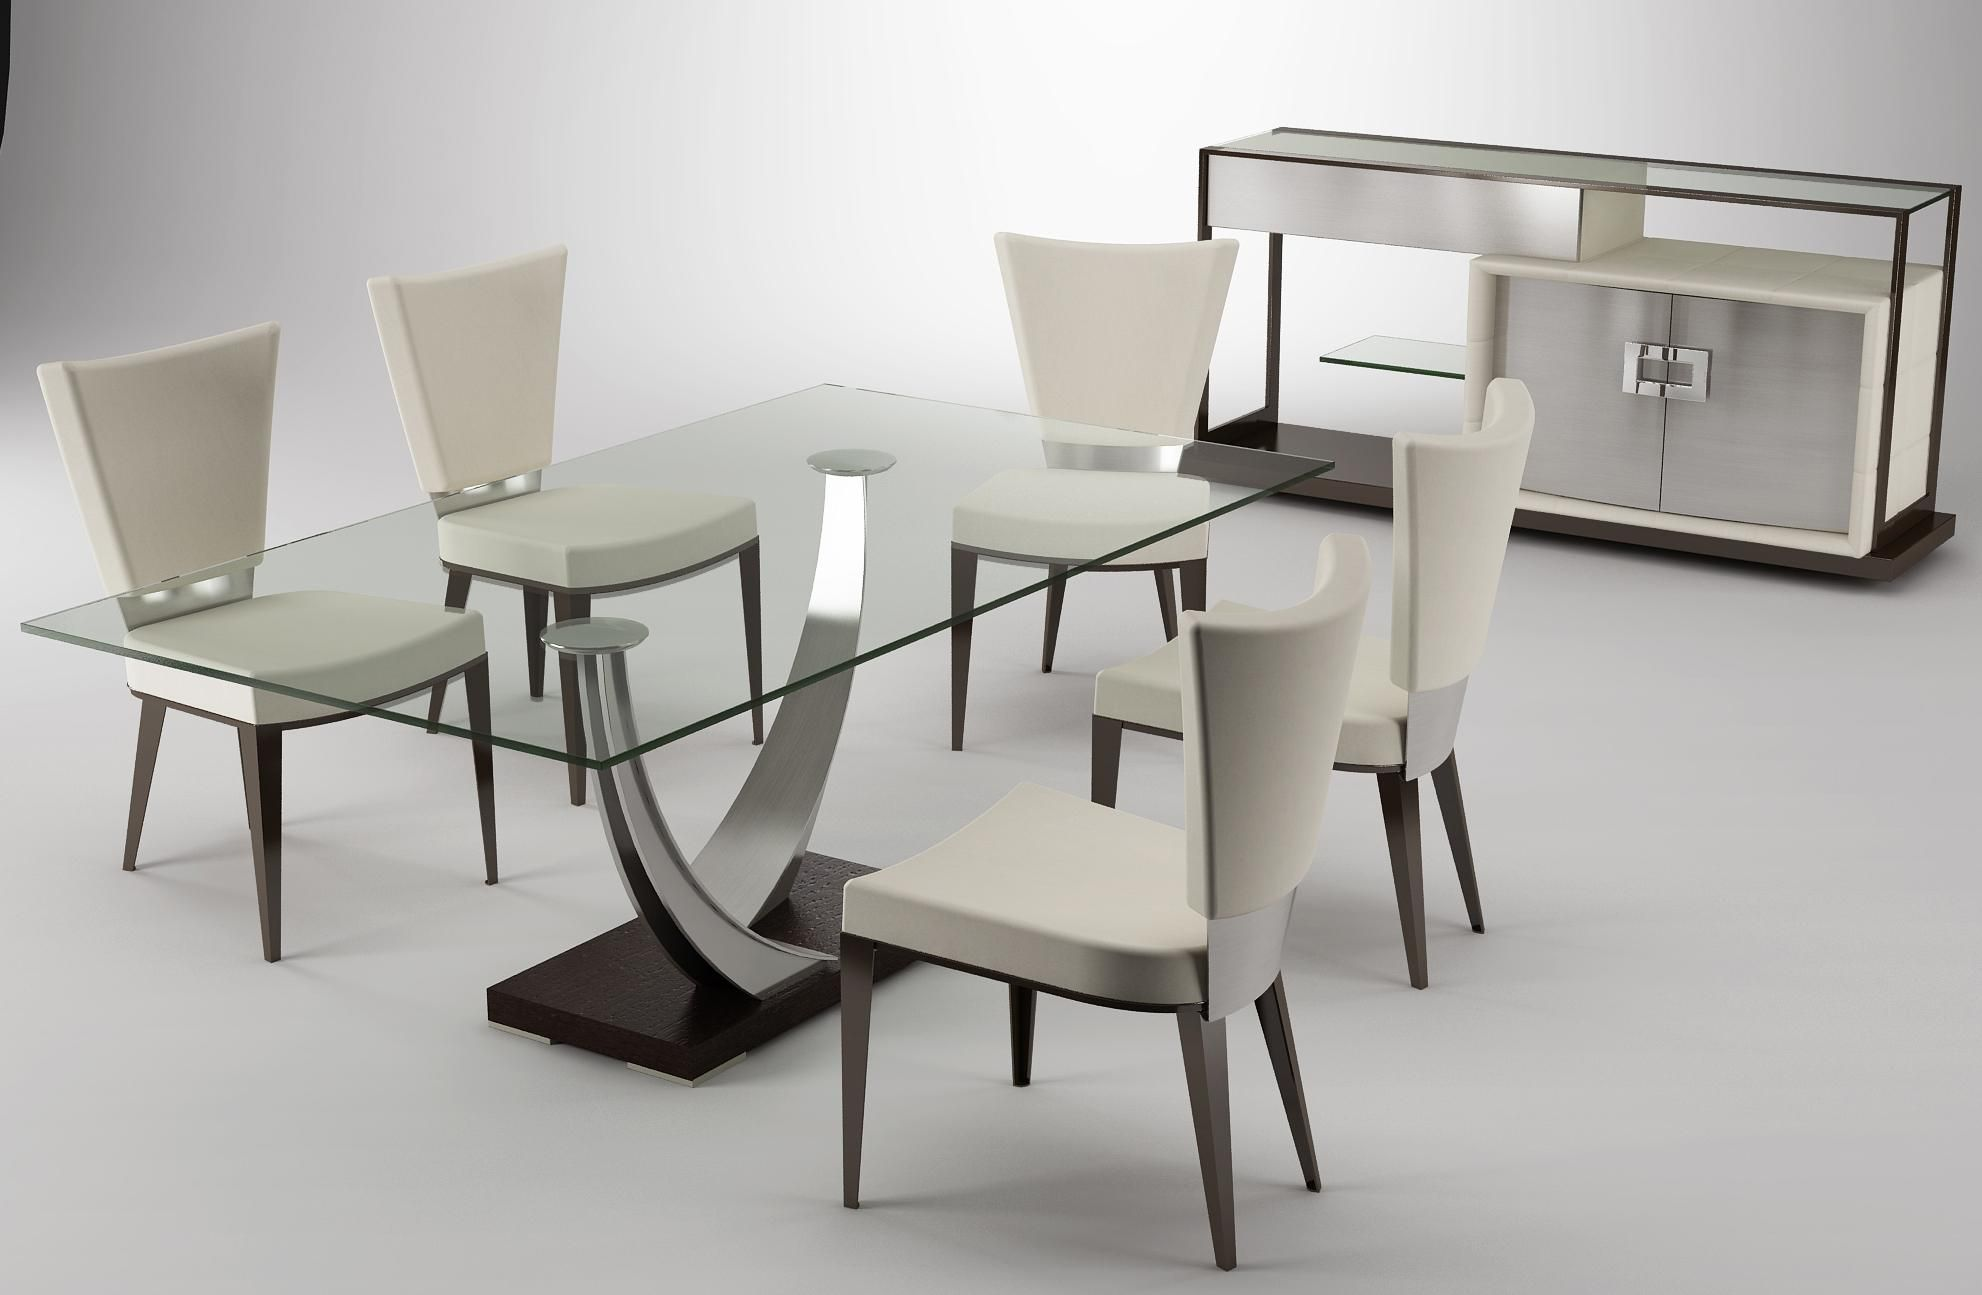 Amazing Modern Stylish Dining Room Table Set Designs Elite Tangent Glass Top Furniture Stores With Tables